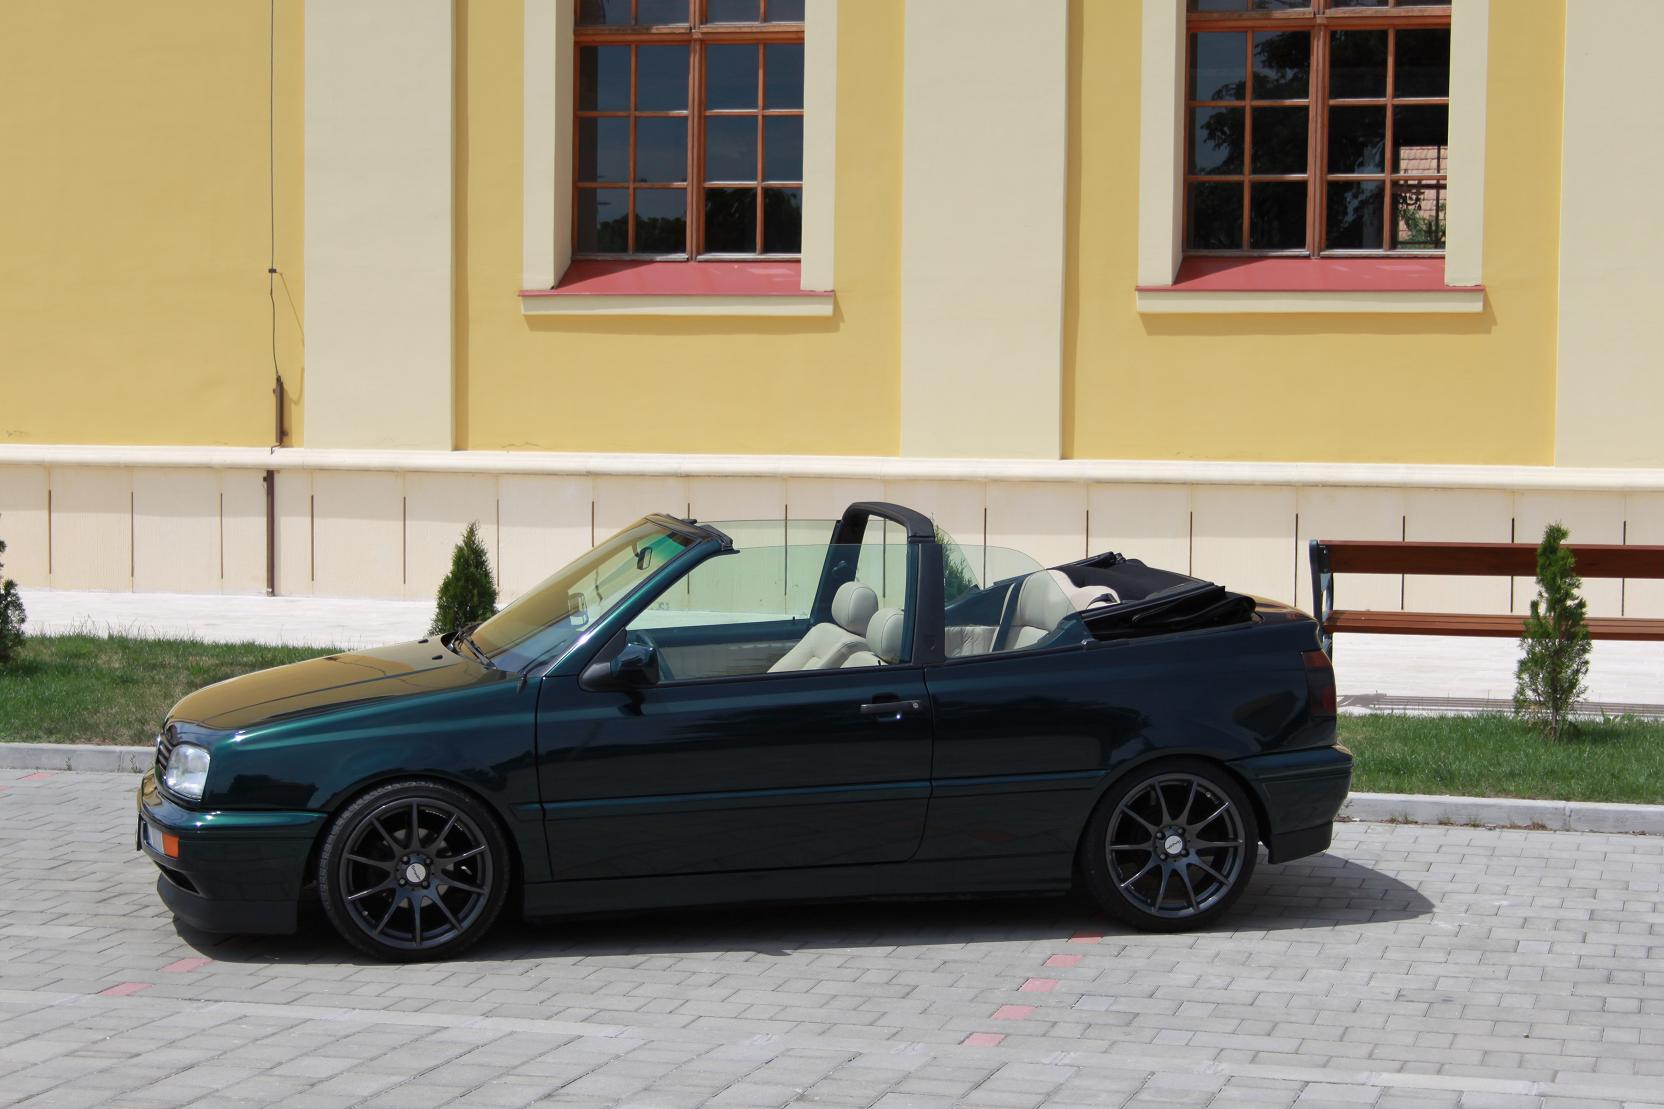 volkswagen golf iii cabrio tuning krisszcab carstyling. Black Bedroom Furniture Sets. Home Design Ideas